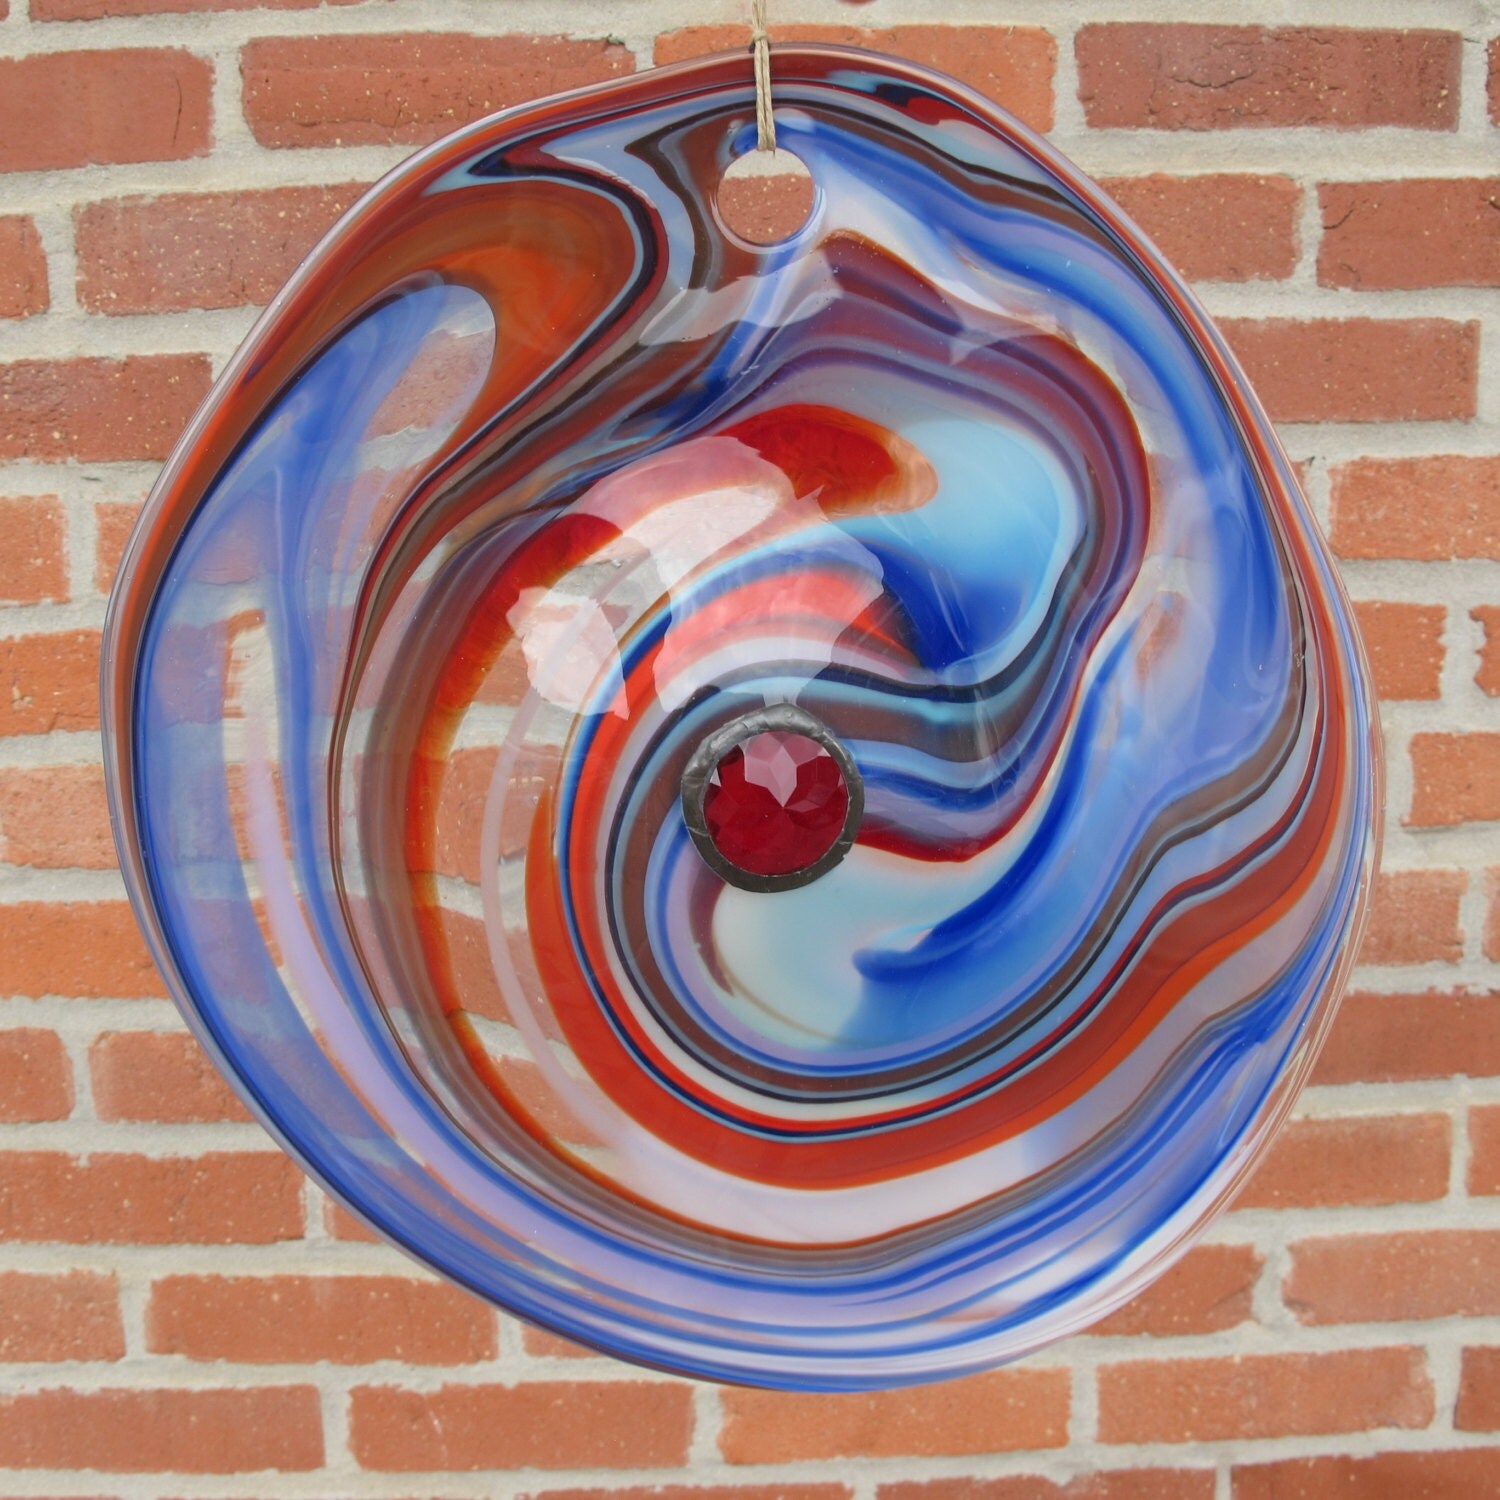 Red White And Blue Blown Glass Rondel With Red Jewel In The